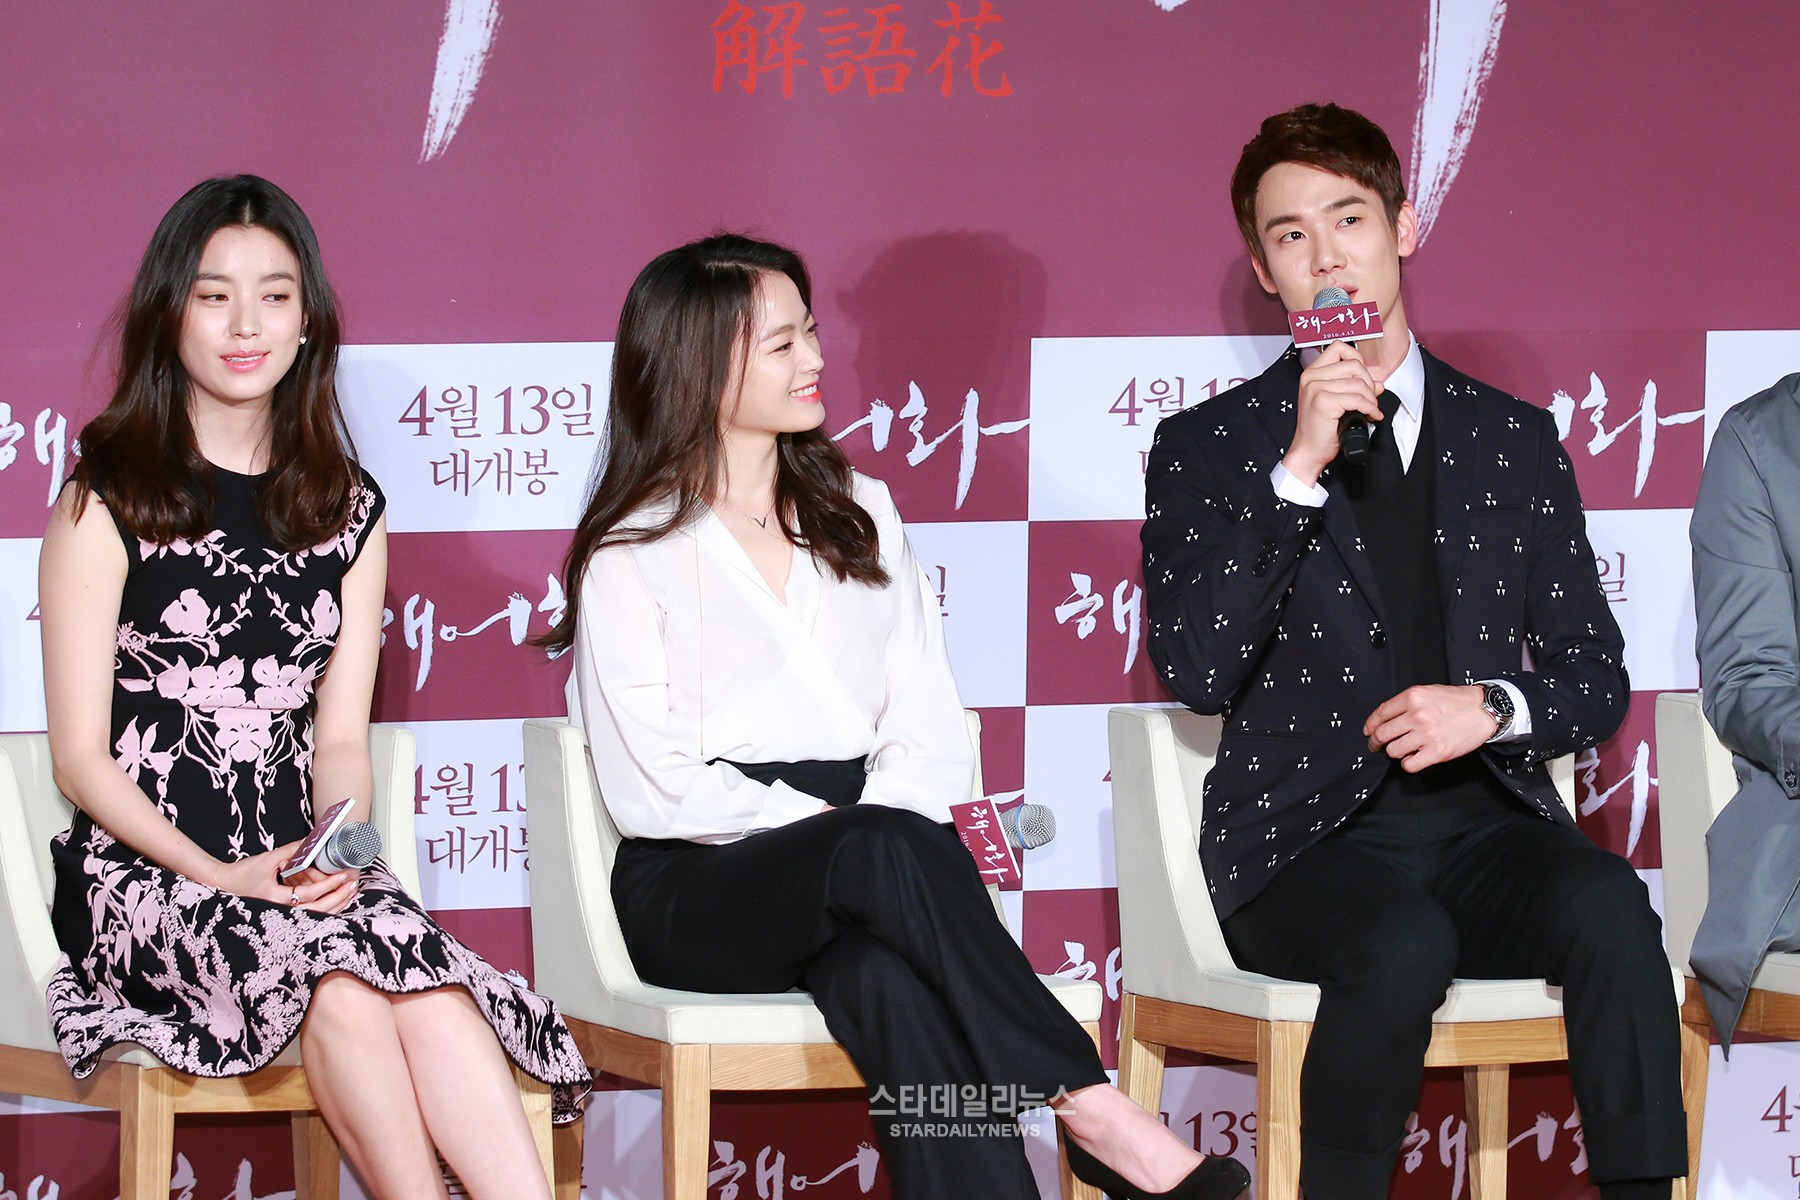 Yoo Yeon Seok Was Captivated by Han Hyo Joo's and Chun Woo Hee's Beauty While Filming Movie